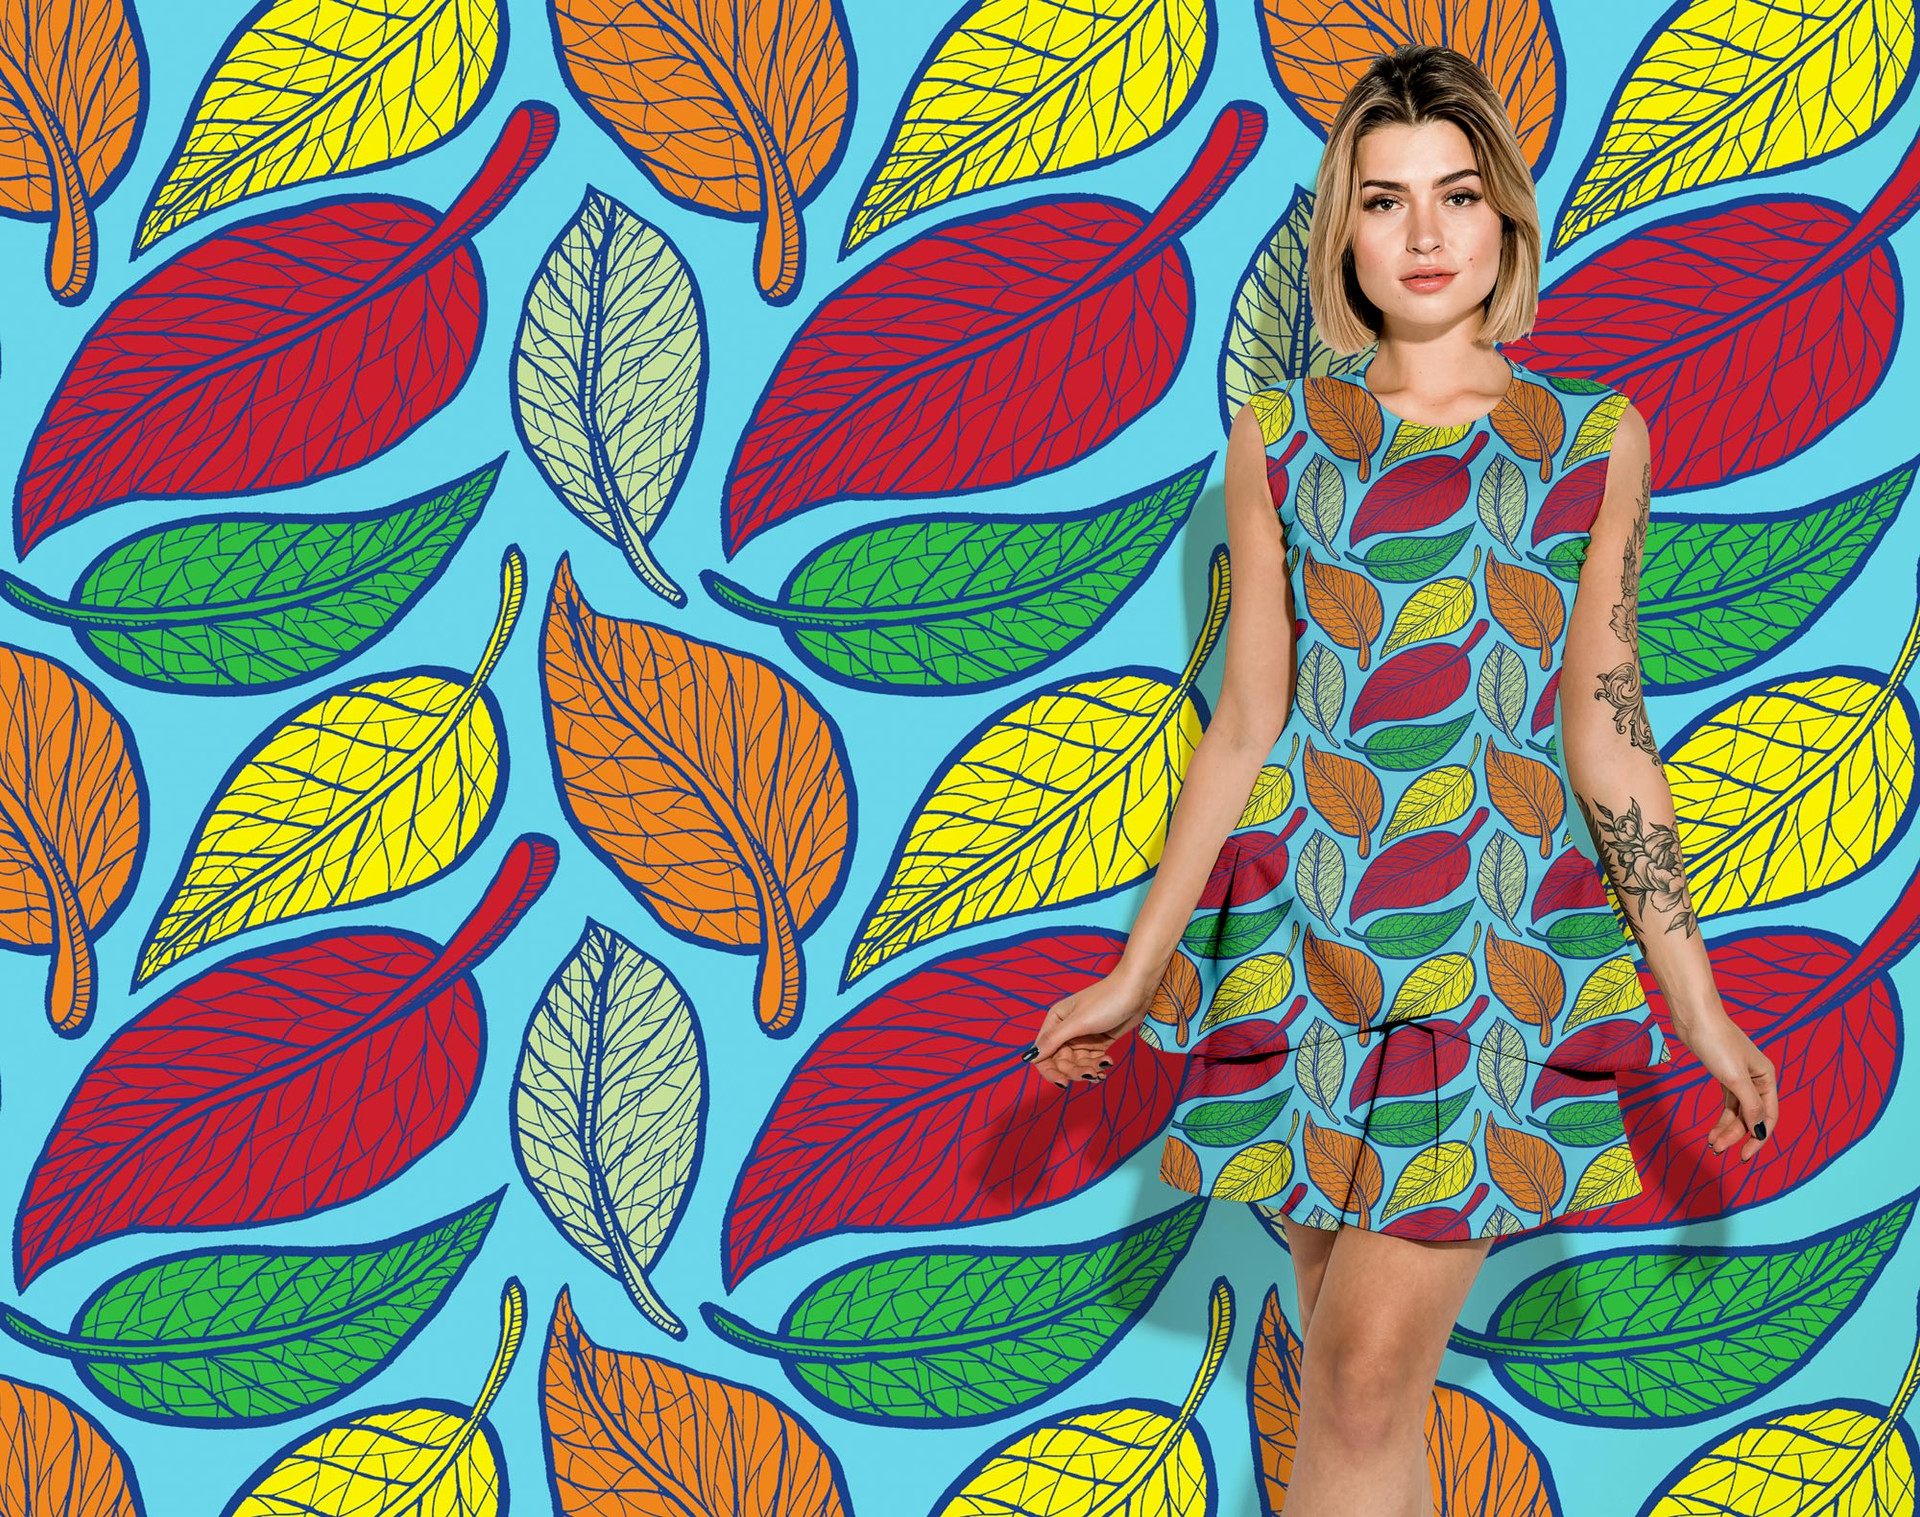 Autumn Leaves pattern on a dress